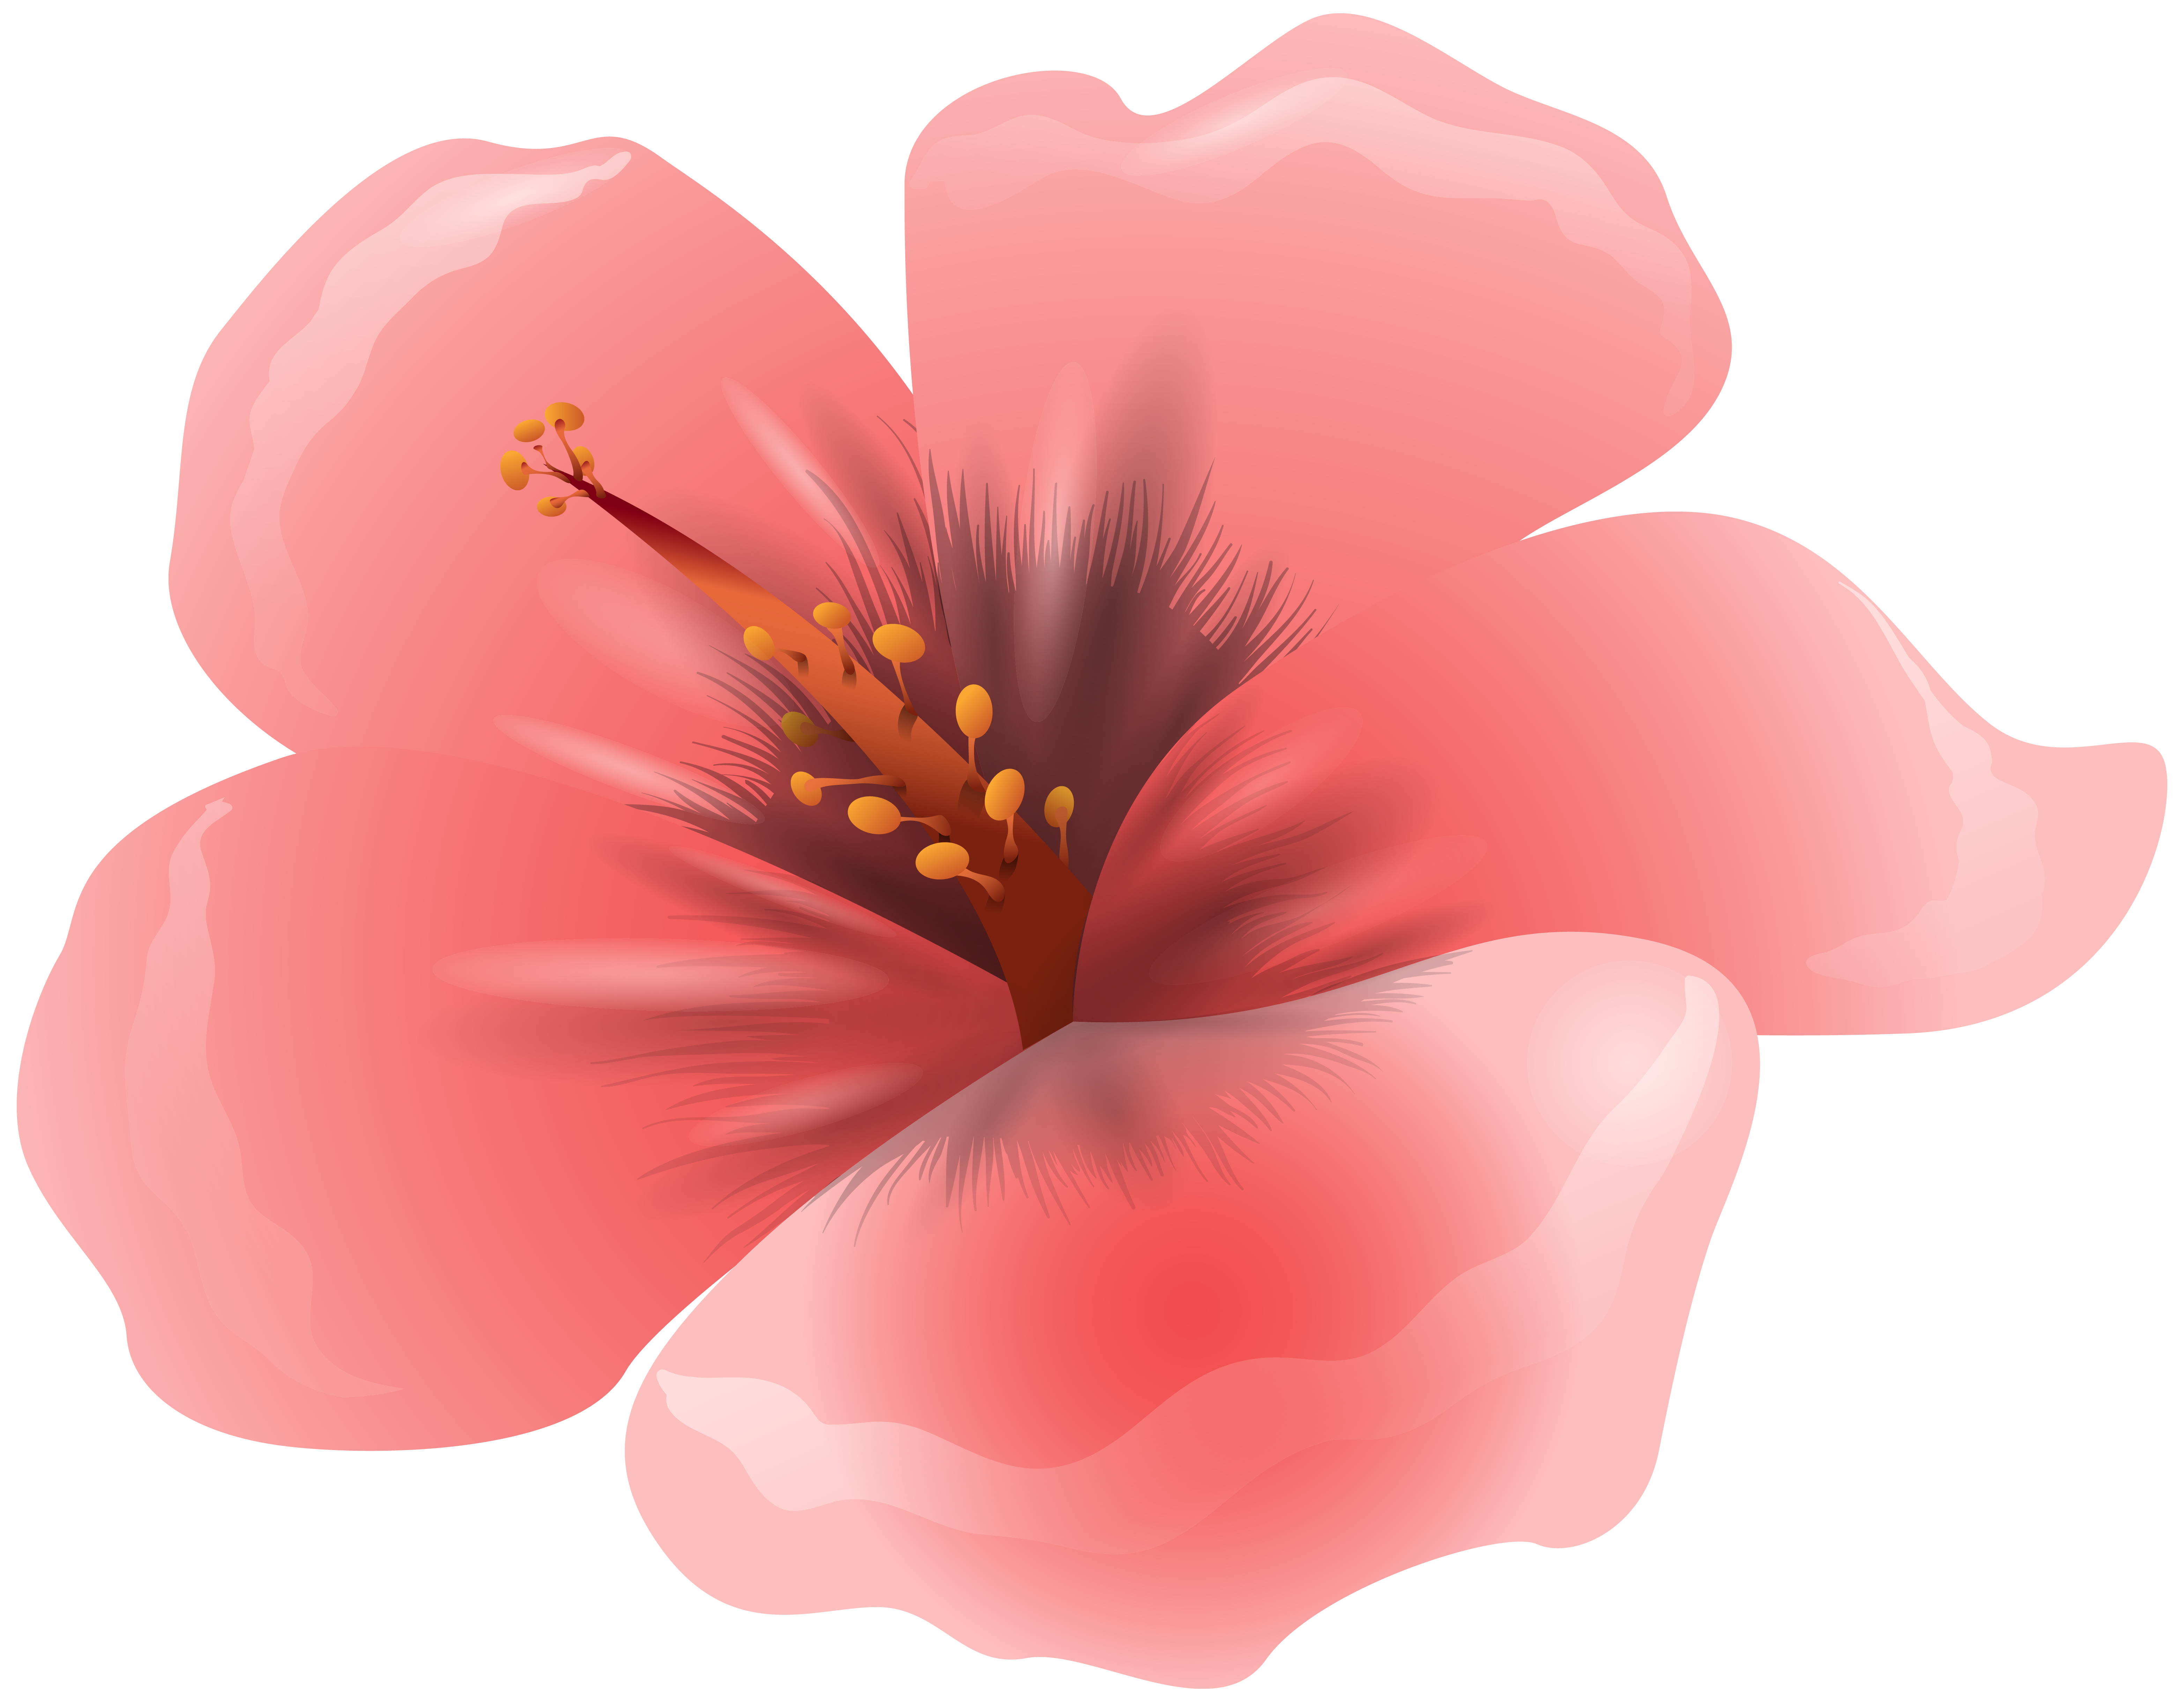 Large Pink Flower Clipart PNG Image.